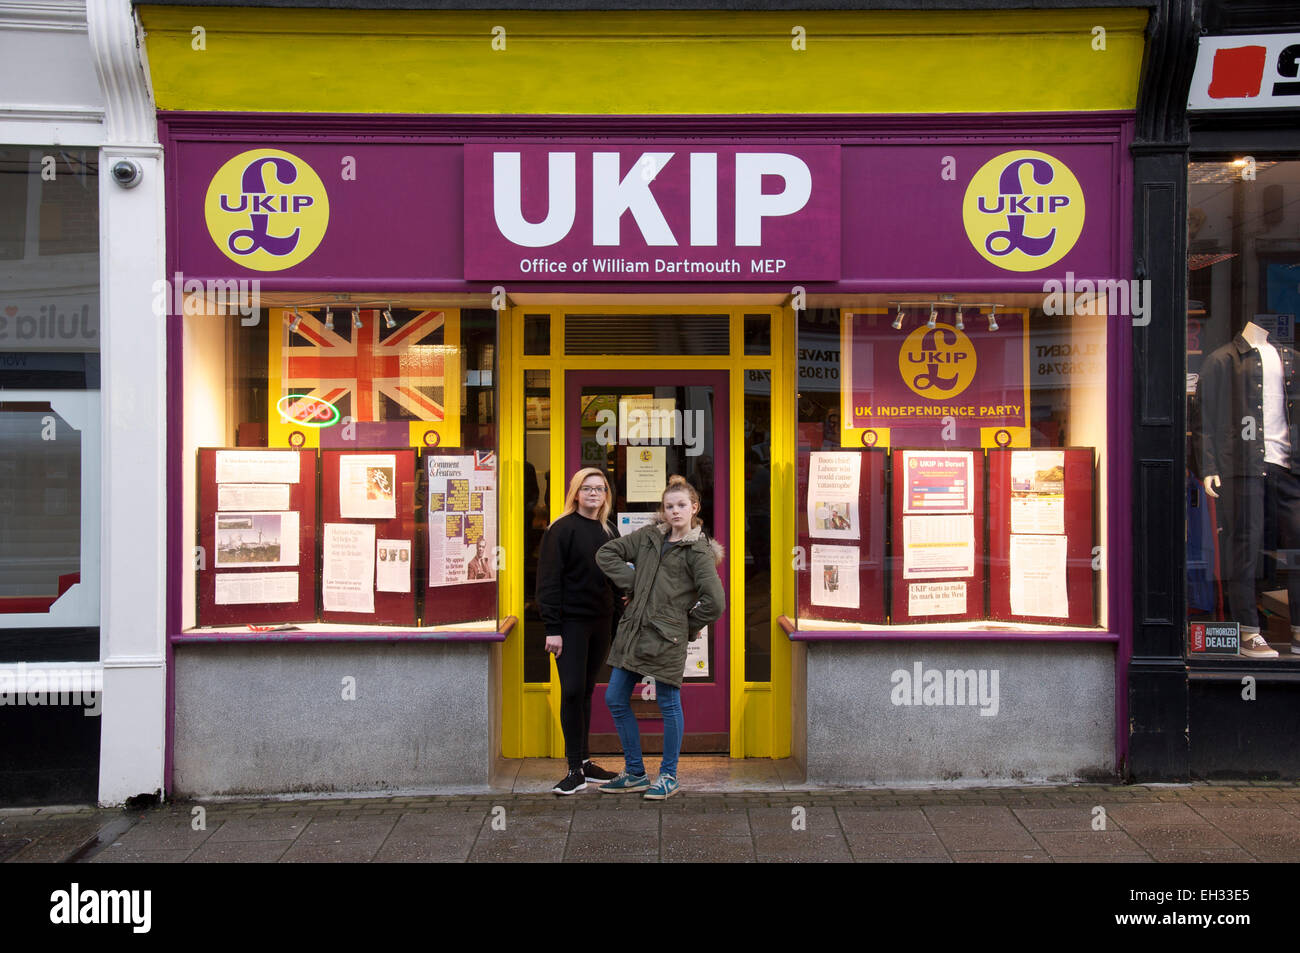 Politics. Two teenage girls pose in the doorway of the local UKIP branch office (United Kingdom Independence Party) - Stock Image